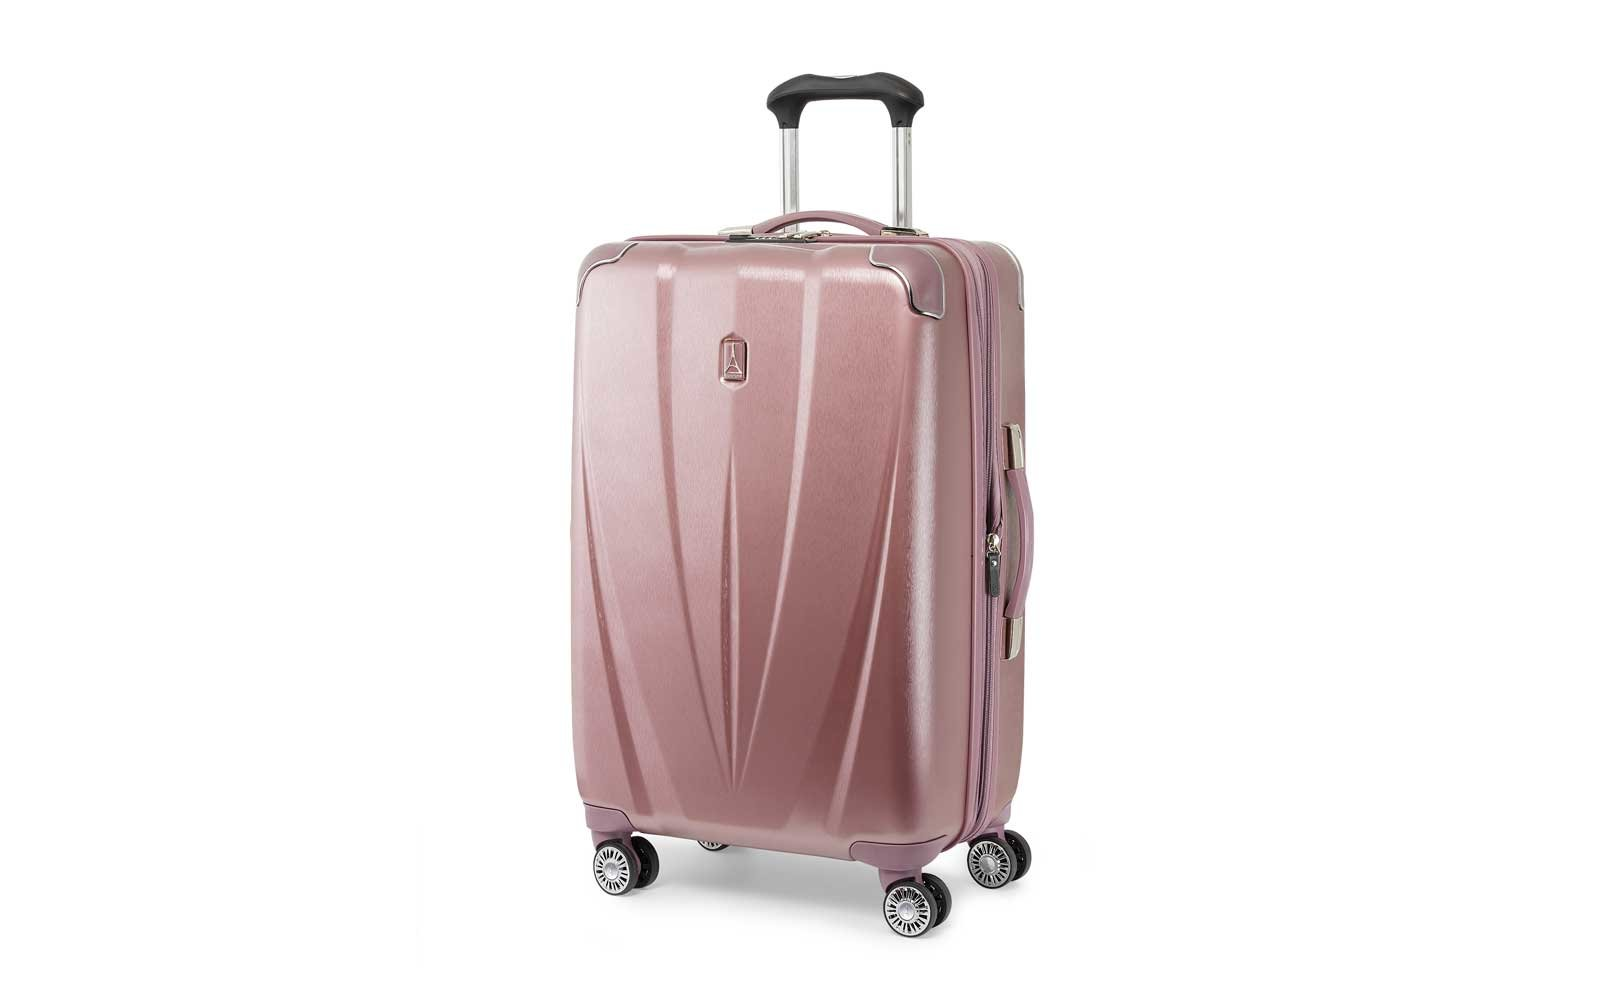 Travelpro Expandable Spinner Suitcase in rose